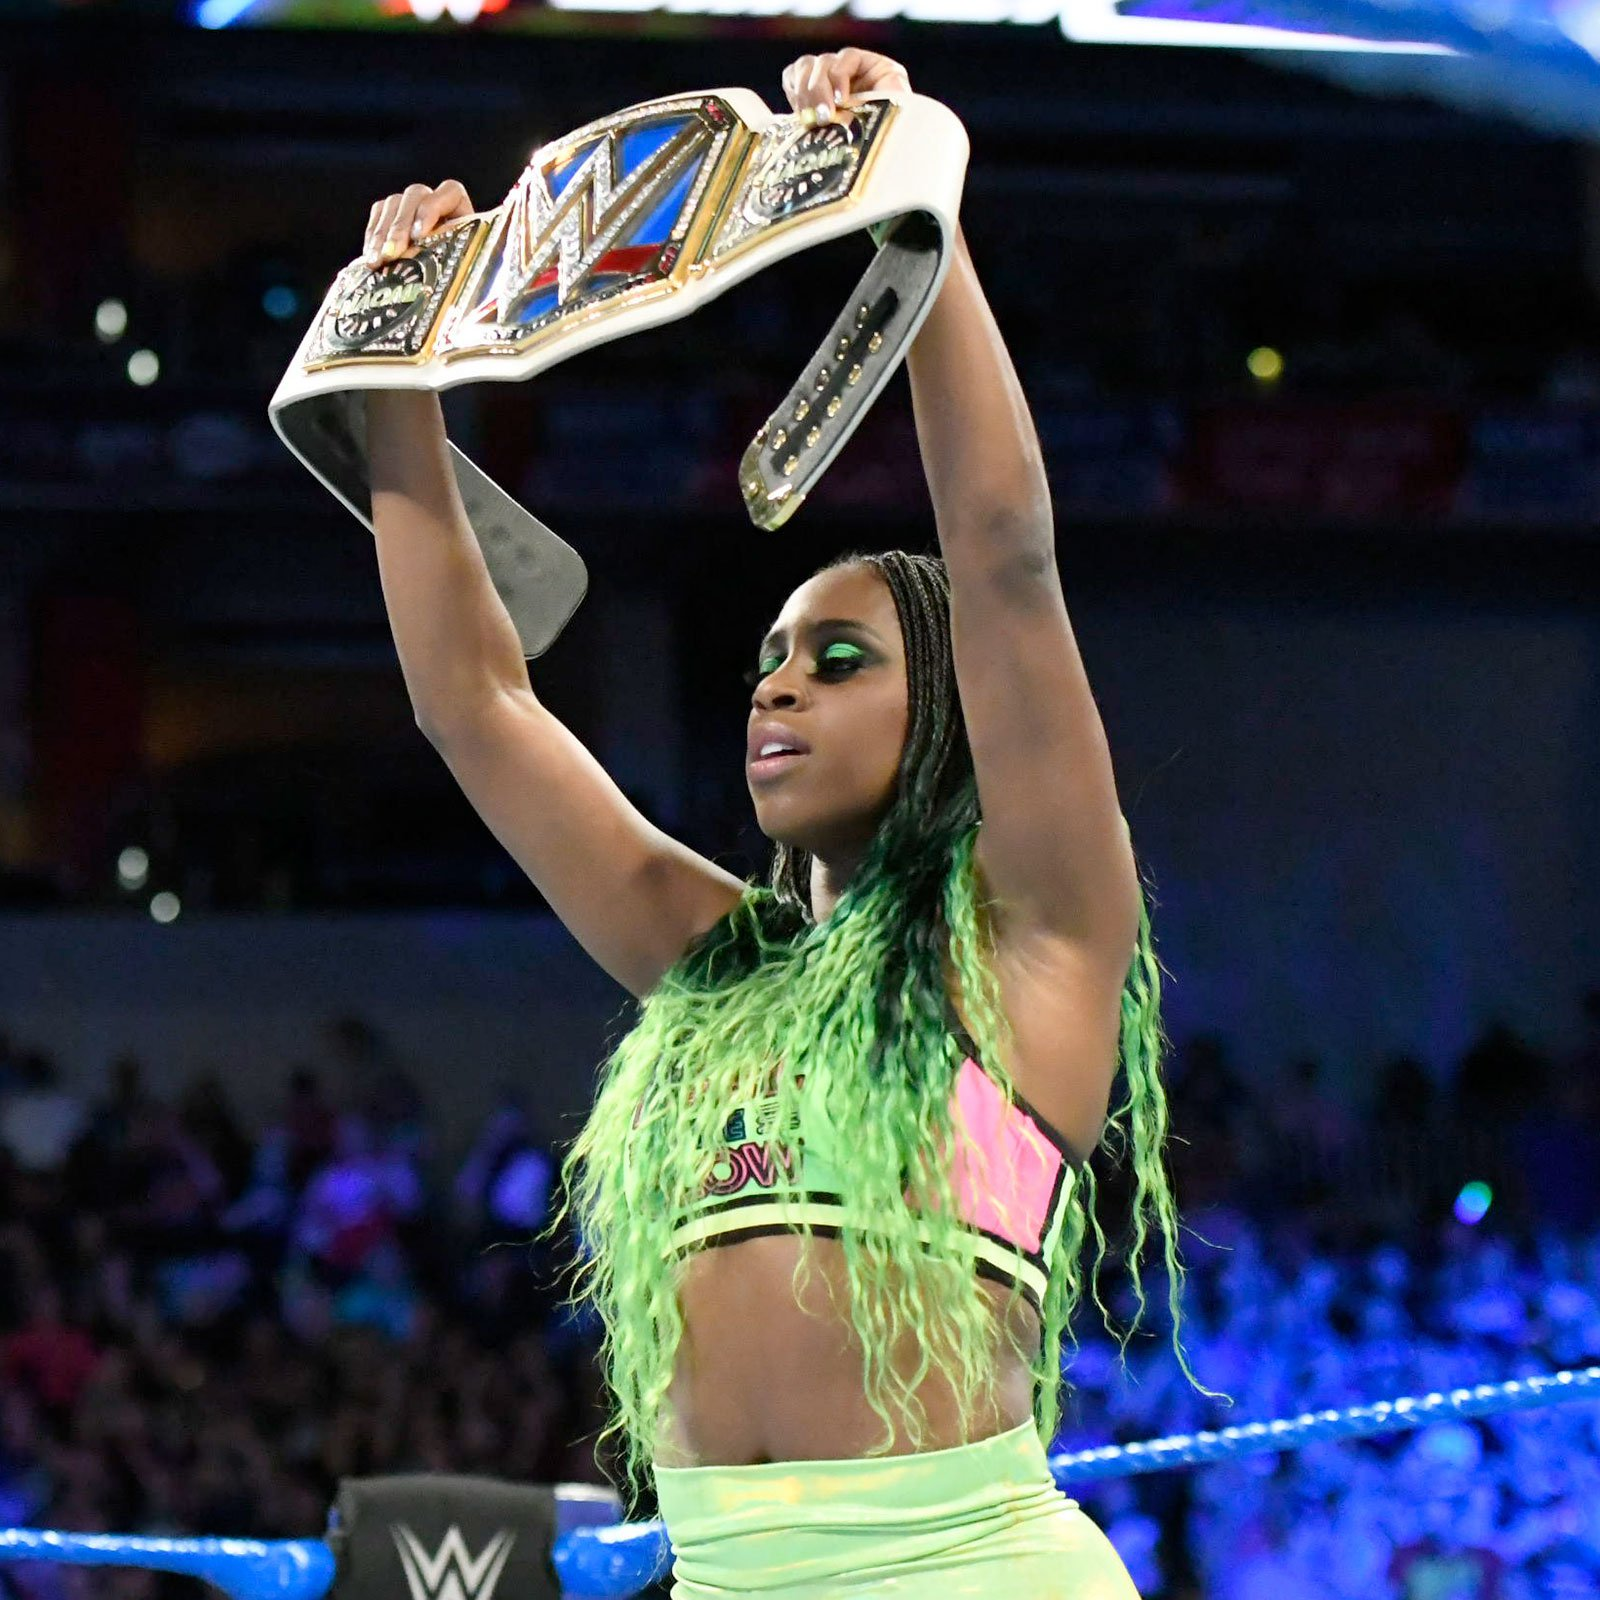 ... and Naomi stands tall with her SmackDown Women's Championship.